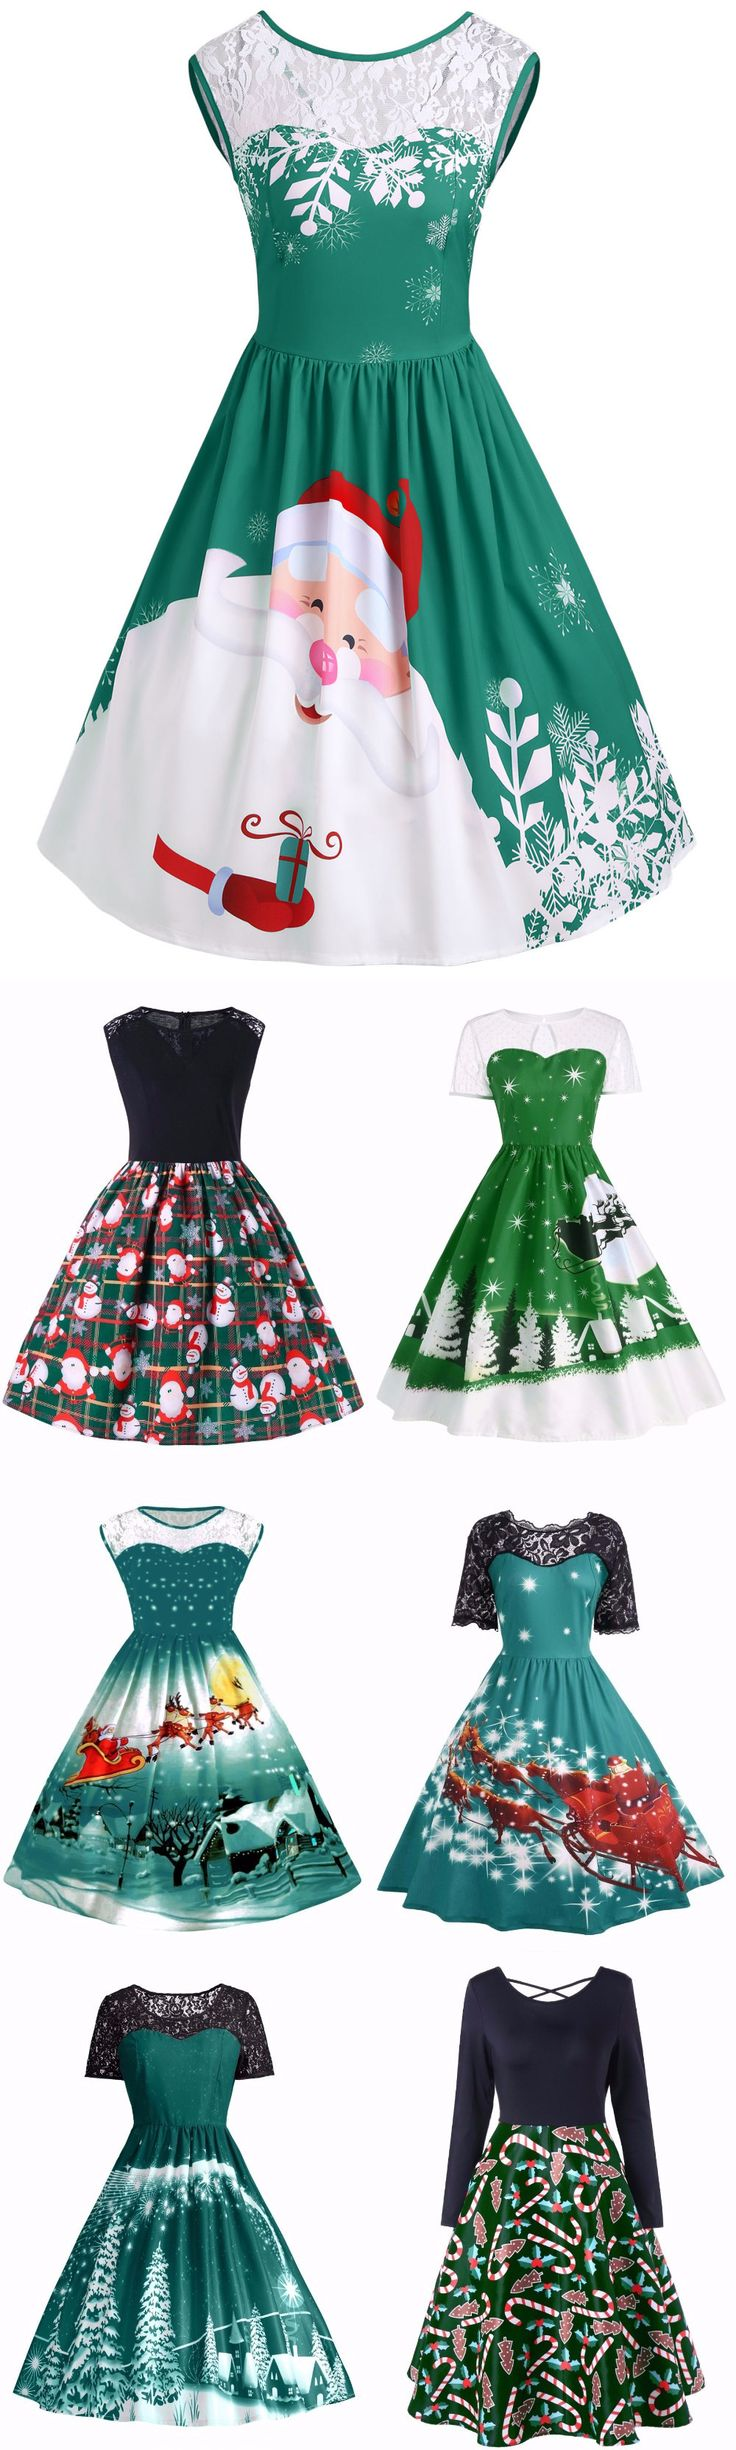 #Green #Christmas Up To 60% OFF   Start From $5   Green Christmas Vintage Dress   Sammydress.com